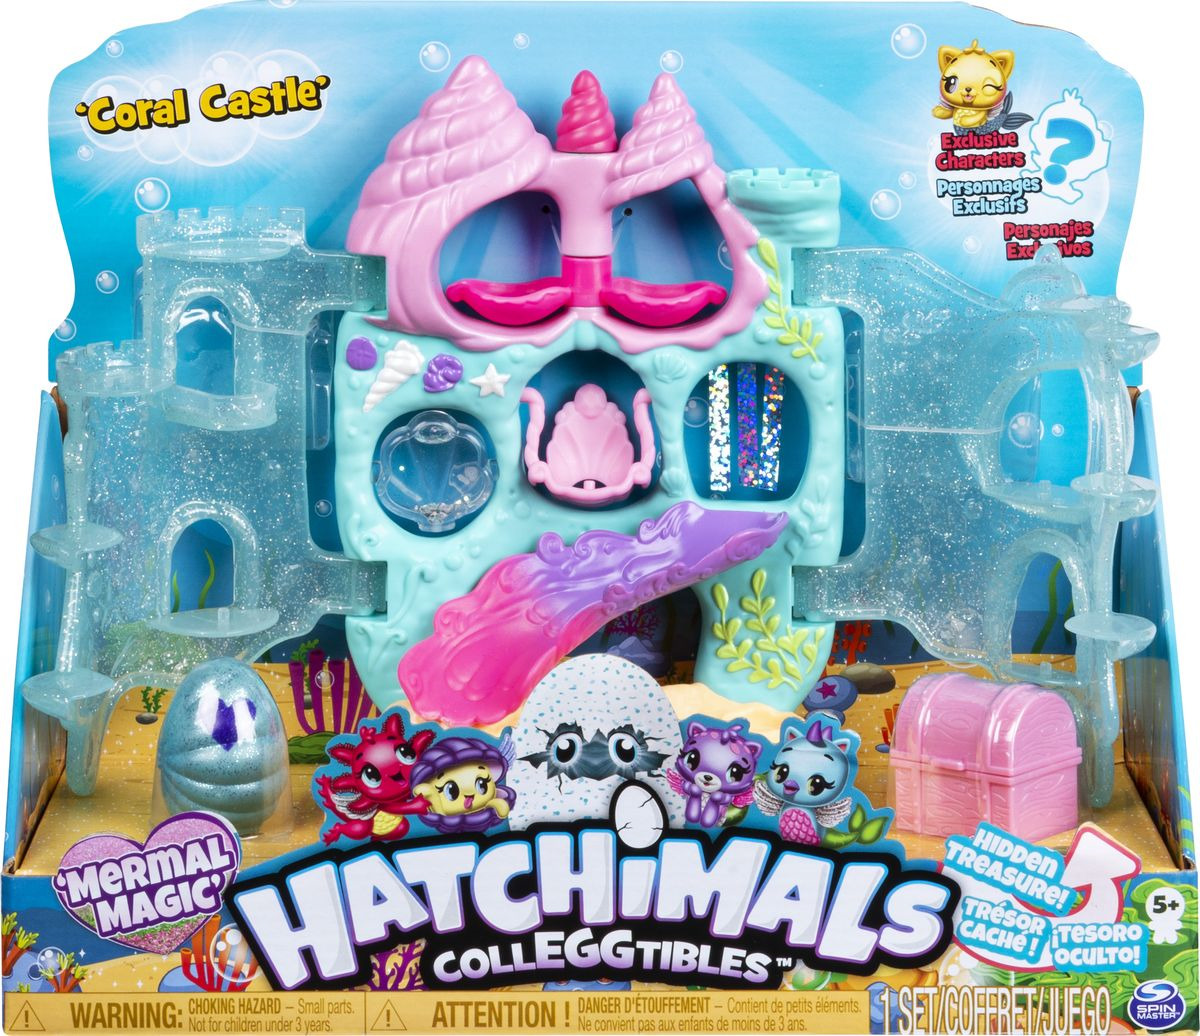 Фигурка Hatchimals Hatchimals Colleggtibles Коралловый дворец, 6045505 фигурка hatchimals hatchimals colleggtibles водная мини горка 6045503